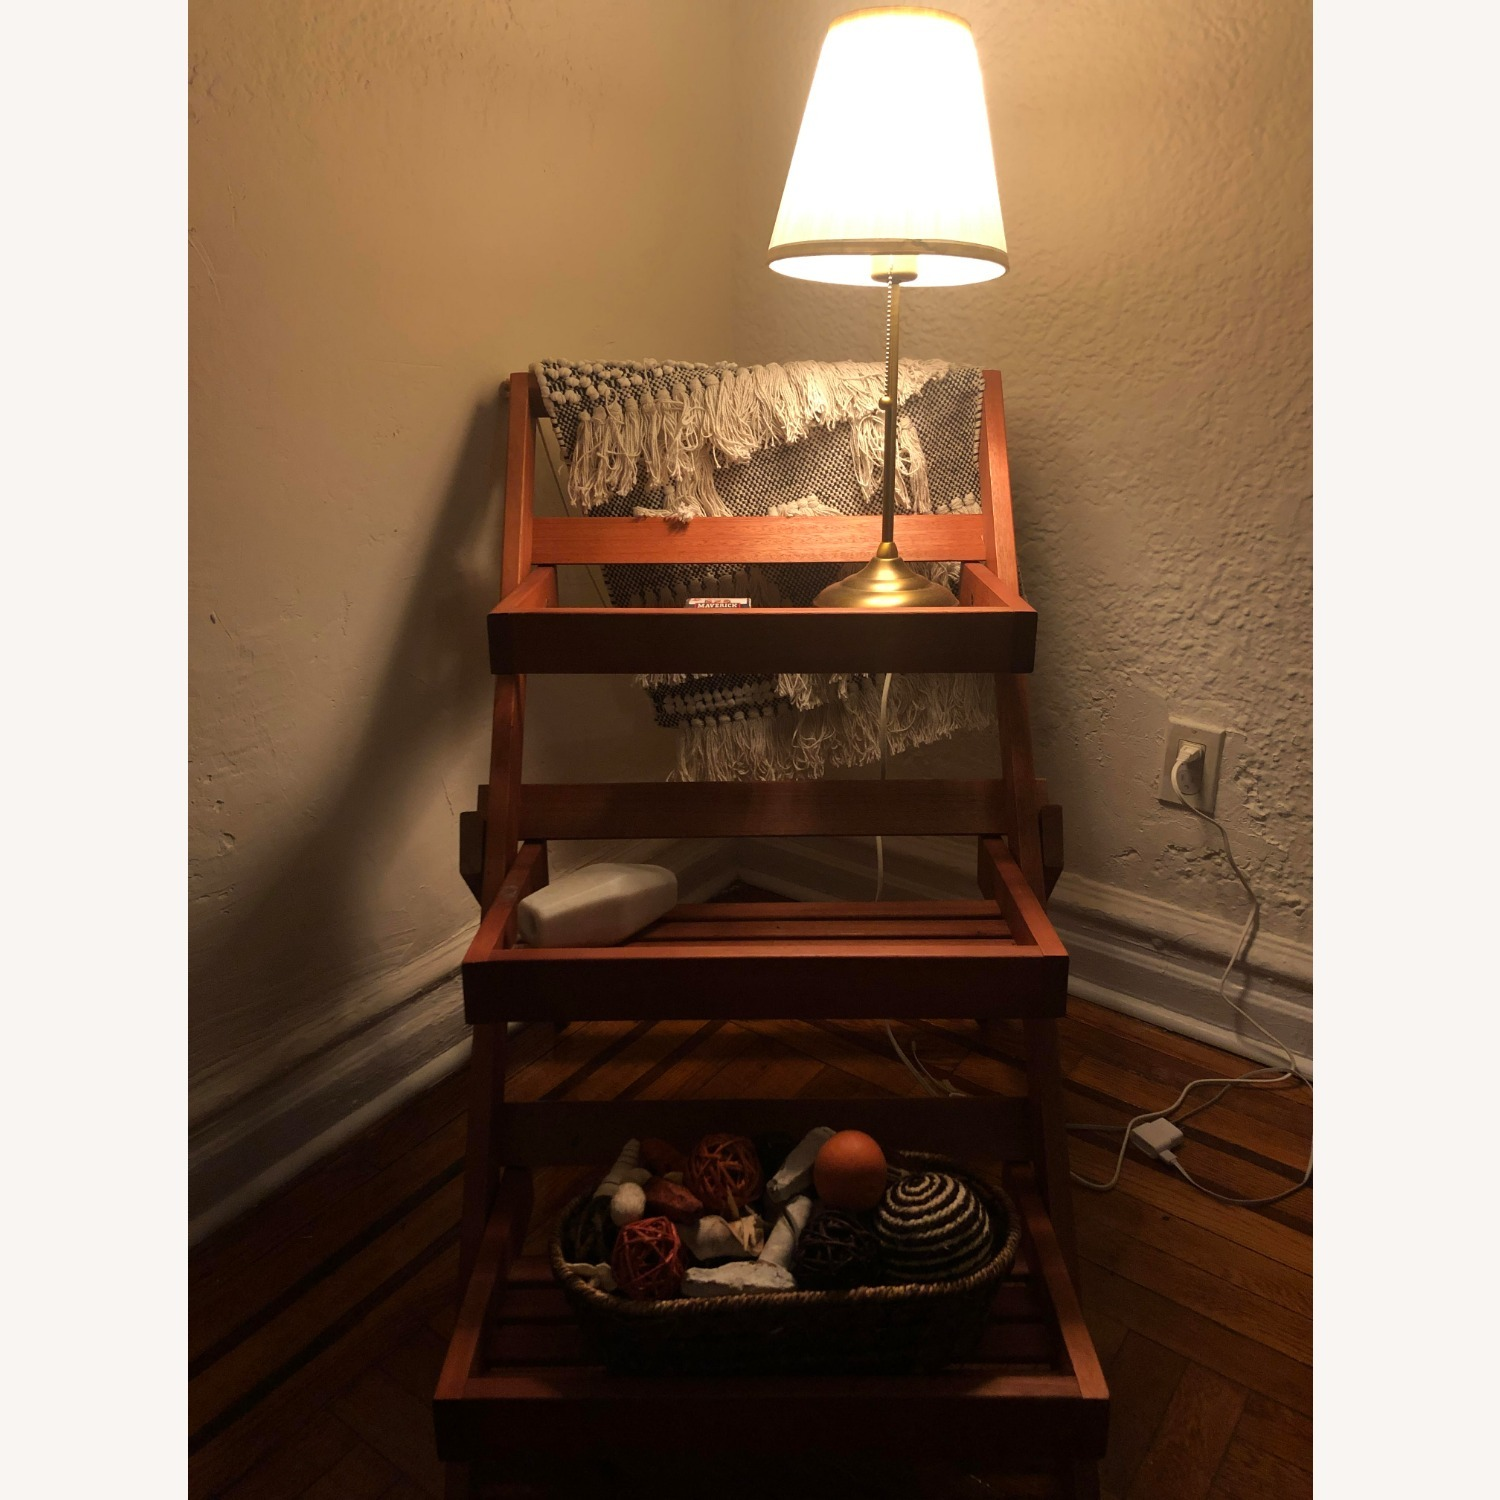 Pier 1 Imports Wood 3-Tiered Plant Stand - image-3